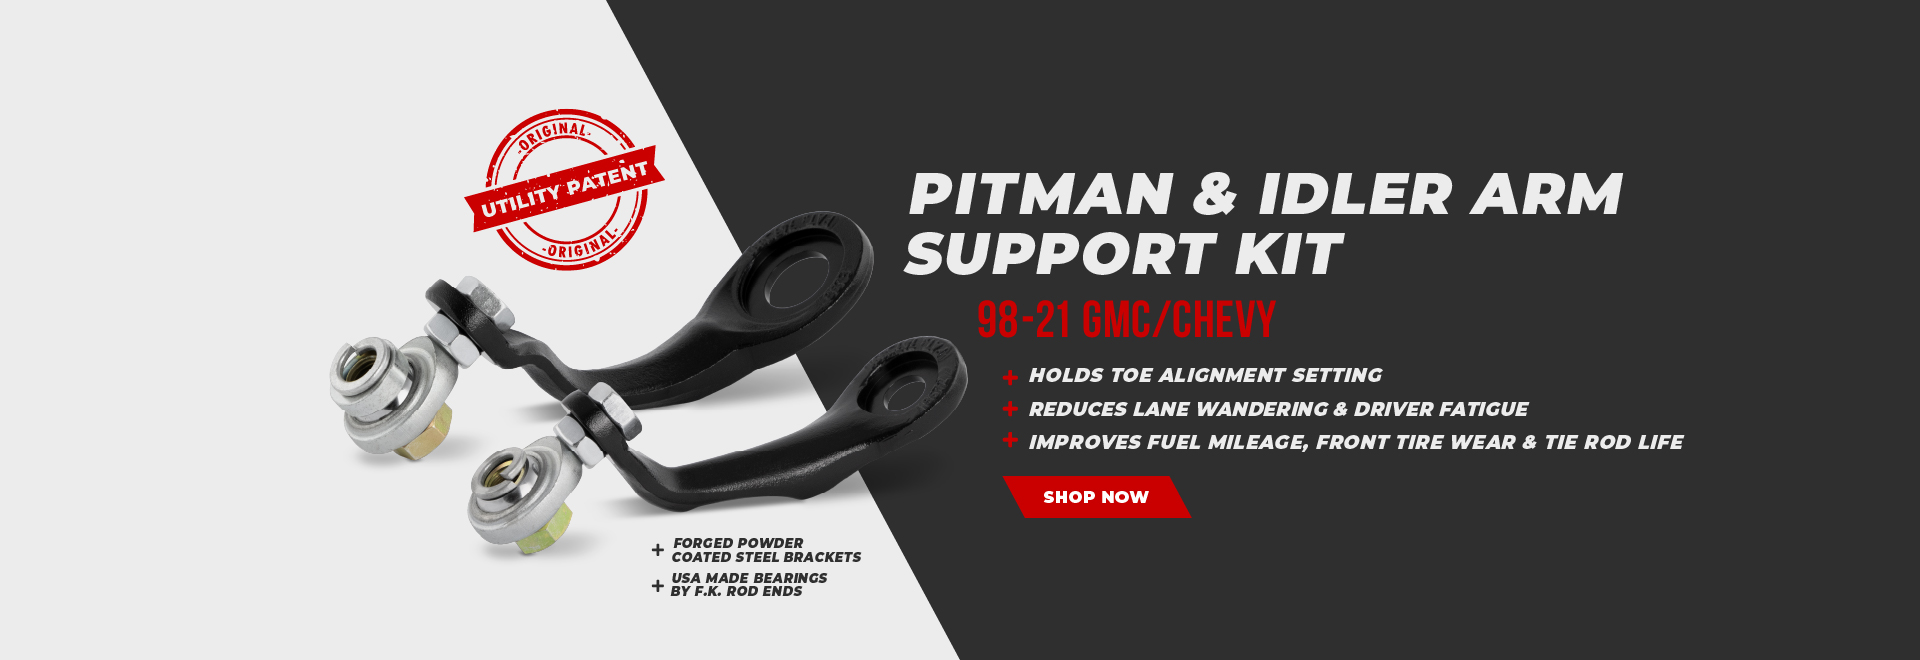 Cognito Pitman and Idler Arm Support Kit